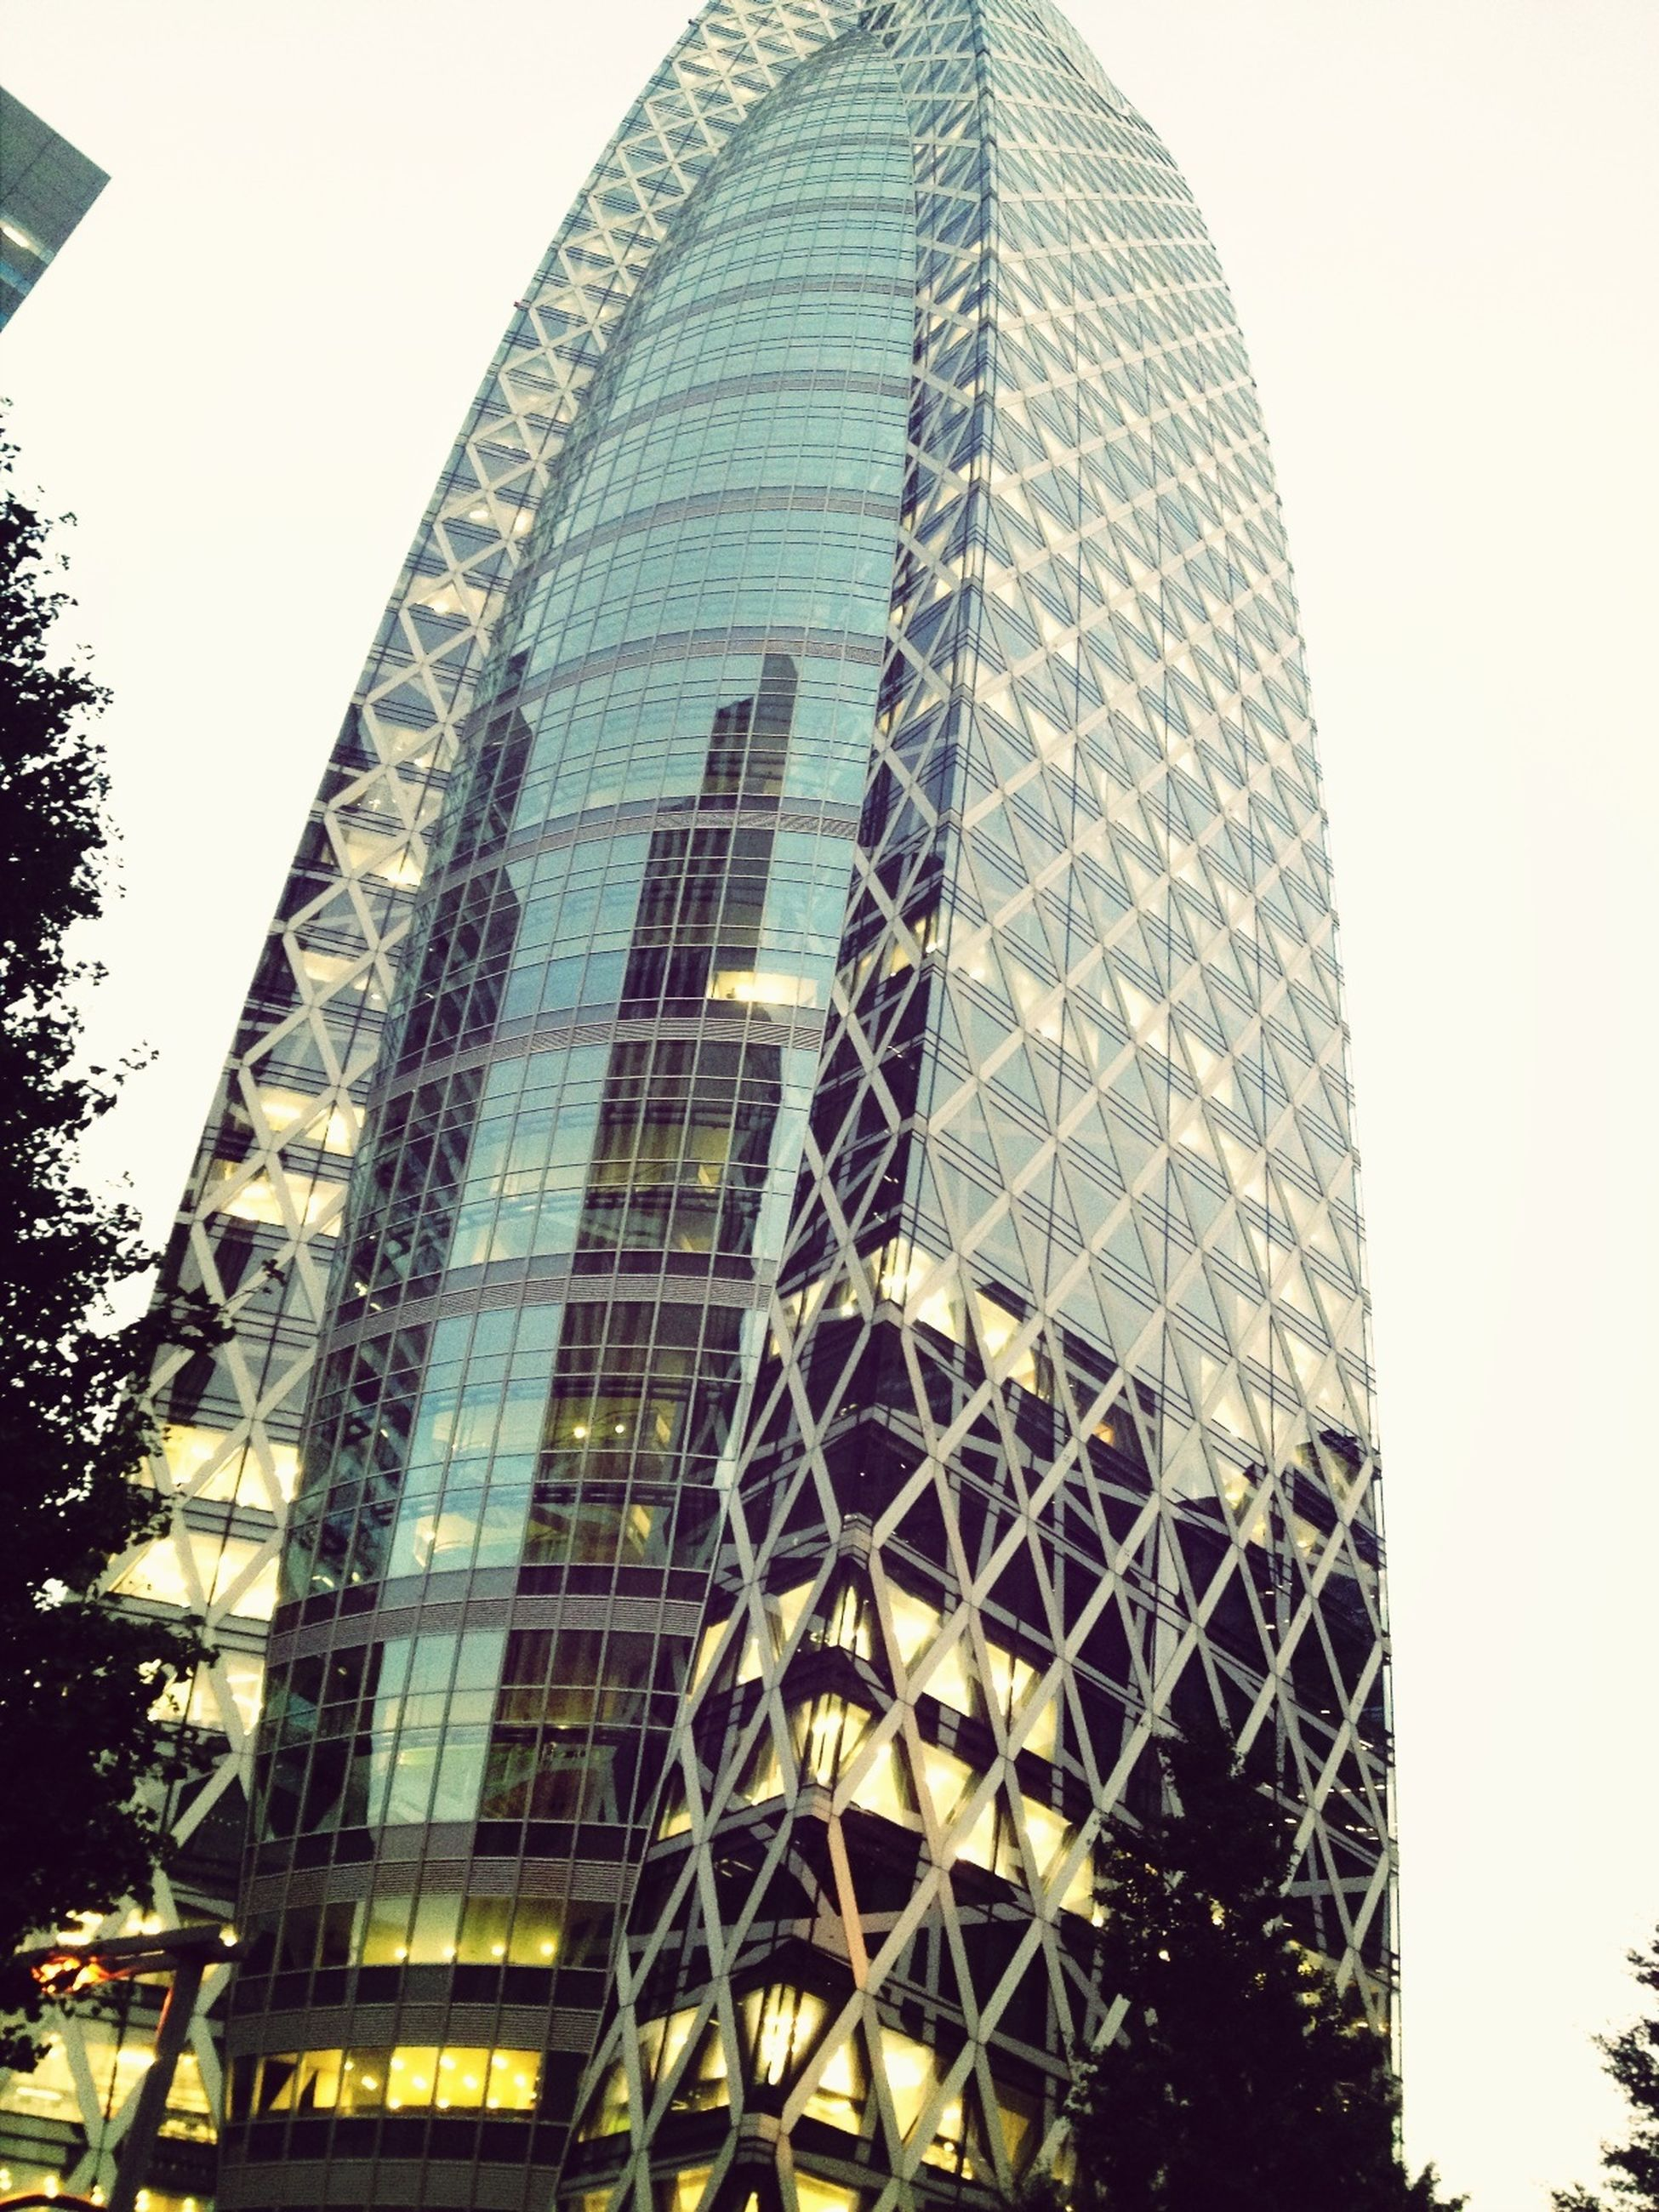 architecture, building exterior, low angle view, built structure, clear sky, modern, office building, building, tower, tall - high, city, window, glass - material, sky, day, pattern, outdoors, skyscraper, no people, growth